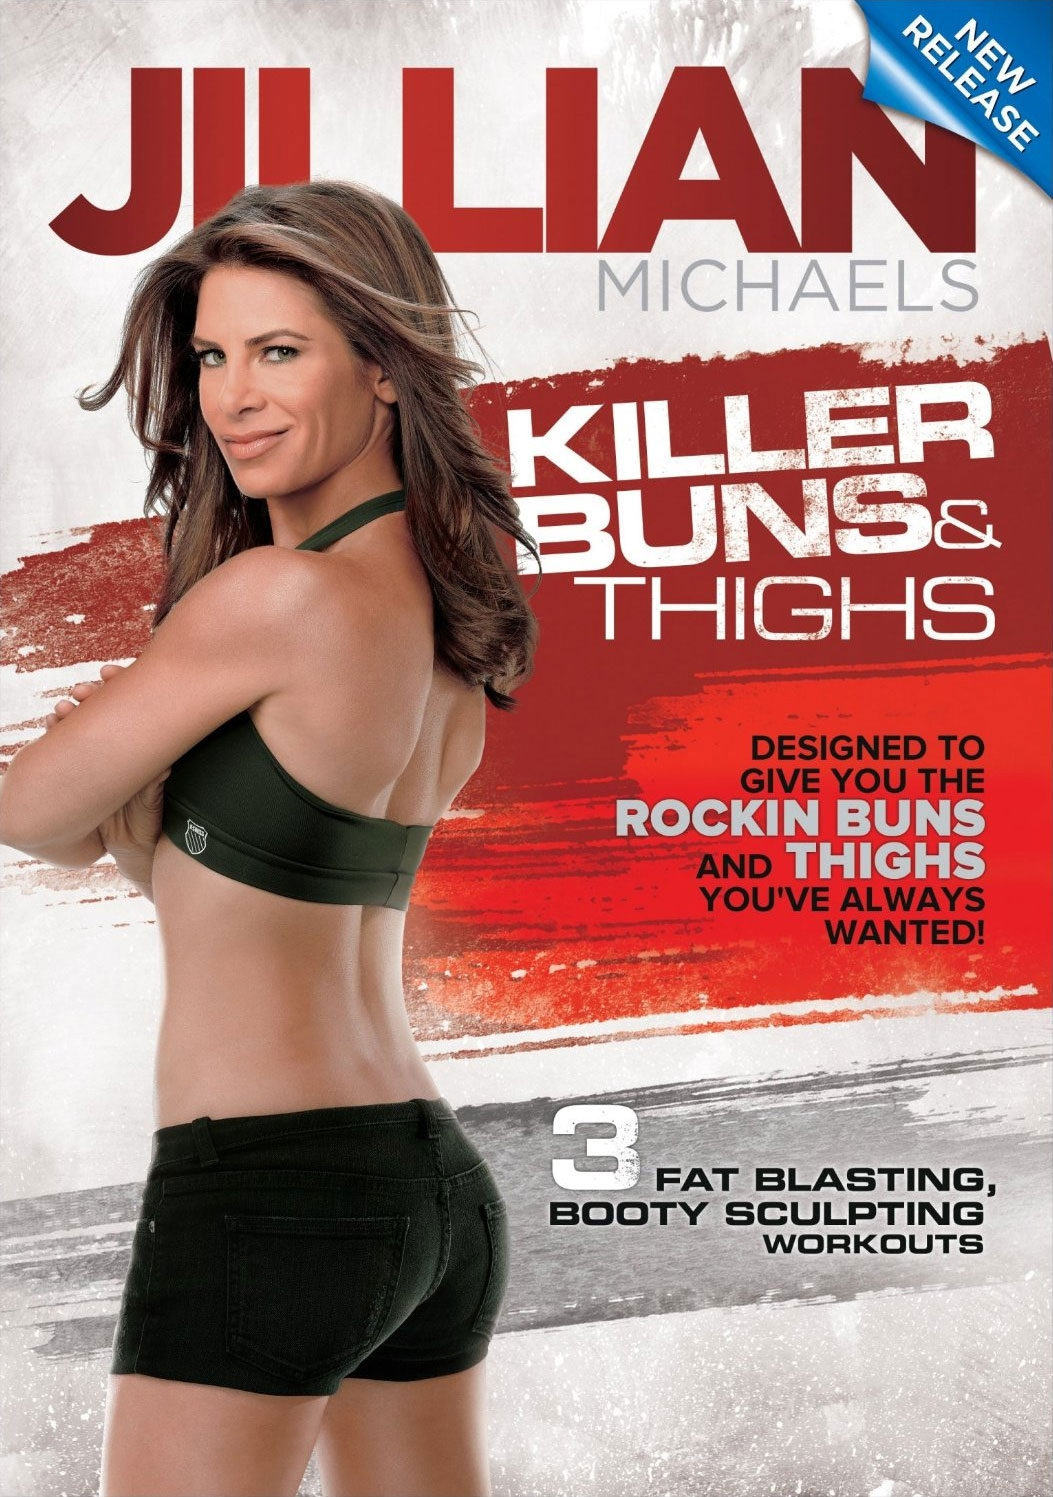 Jillian Michaels Killer Buns & Thighs (DVD)